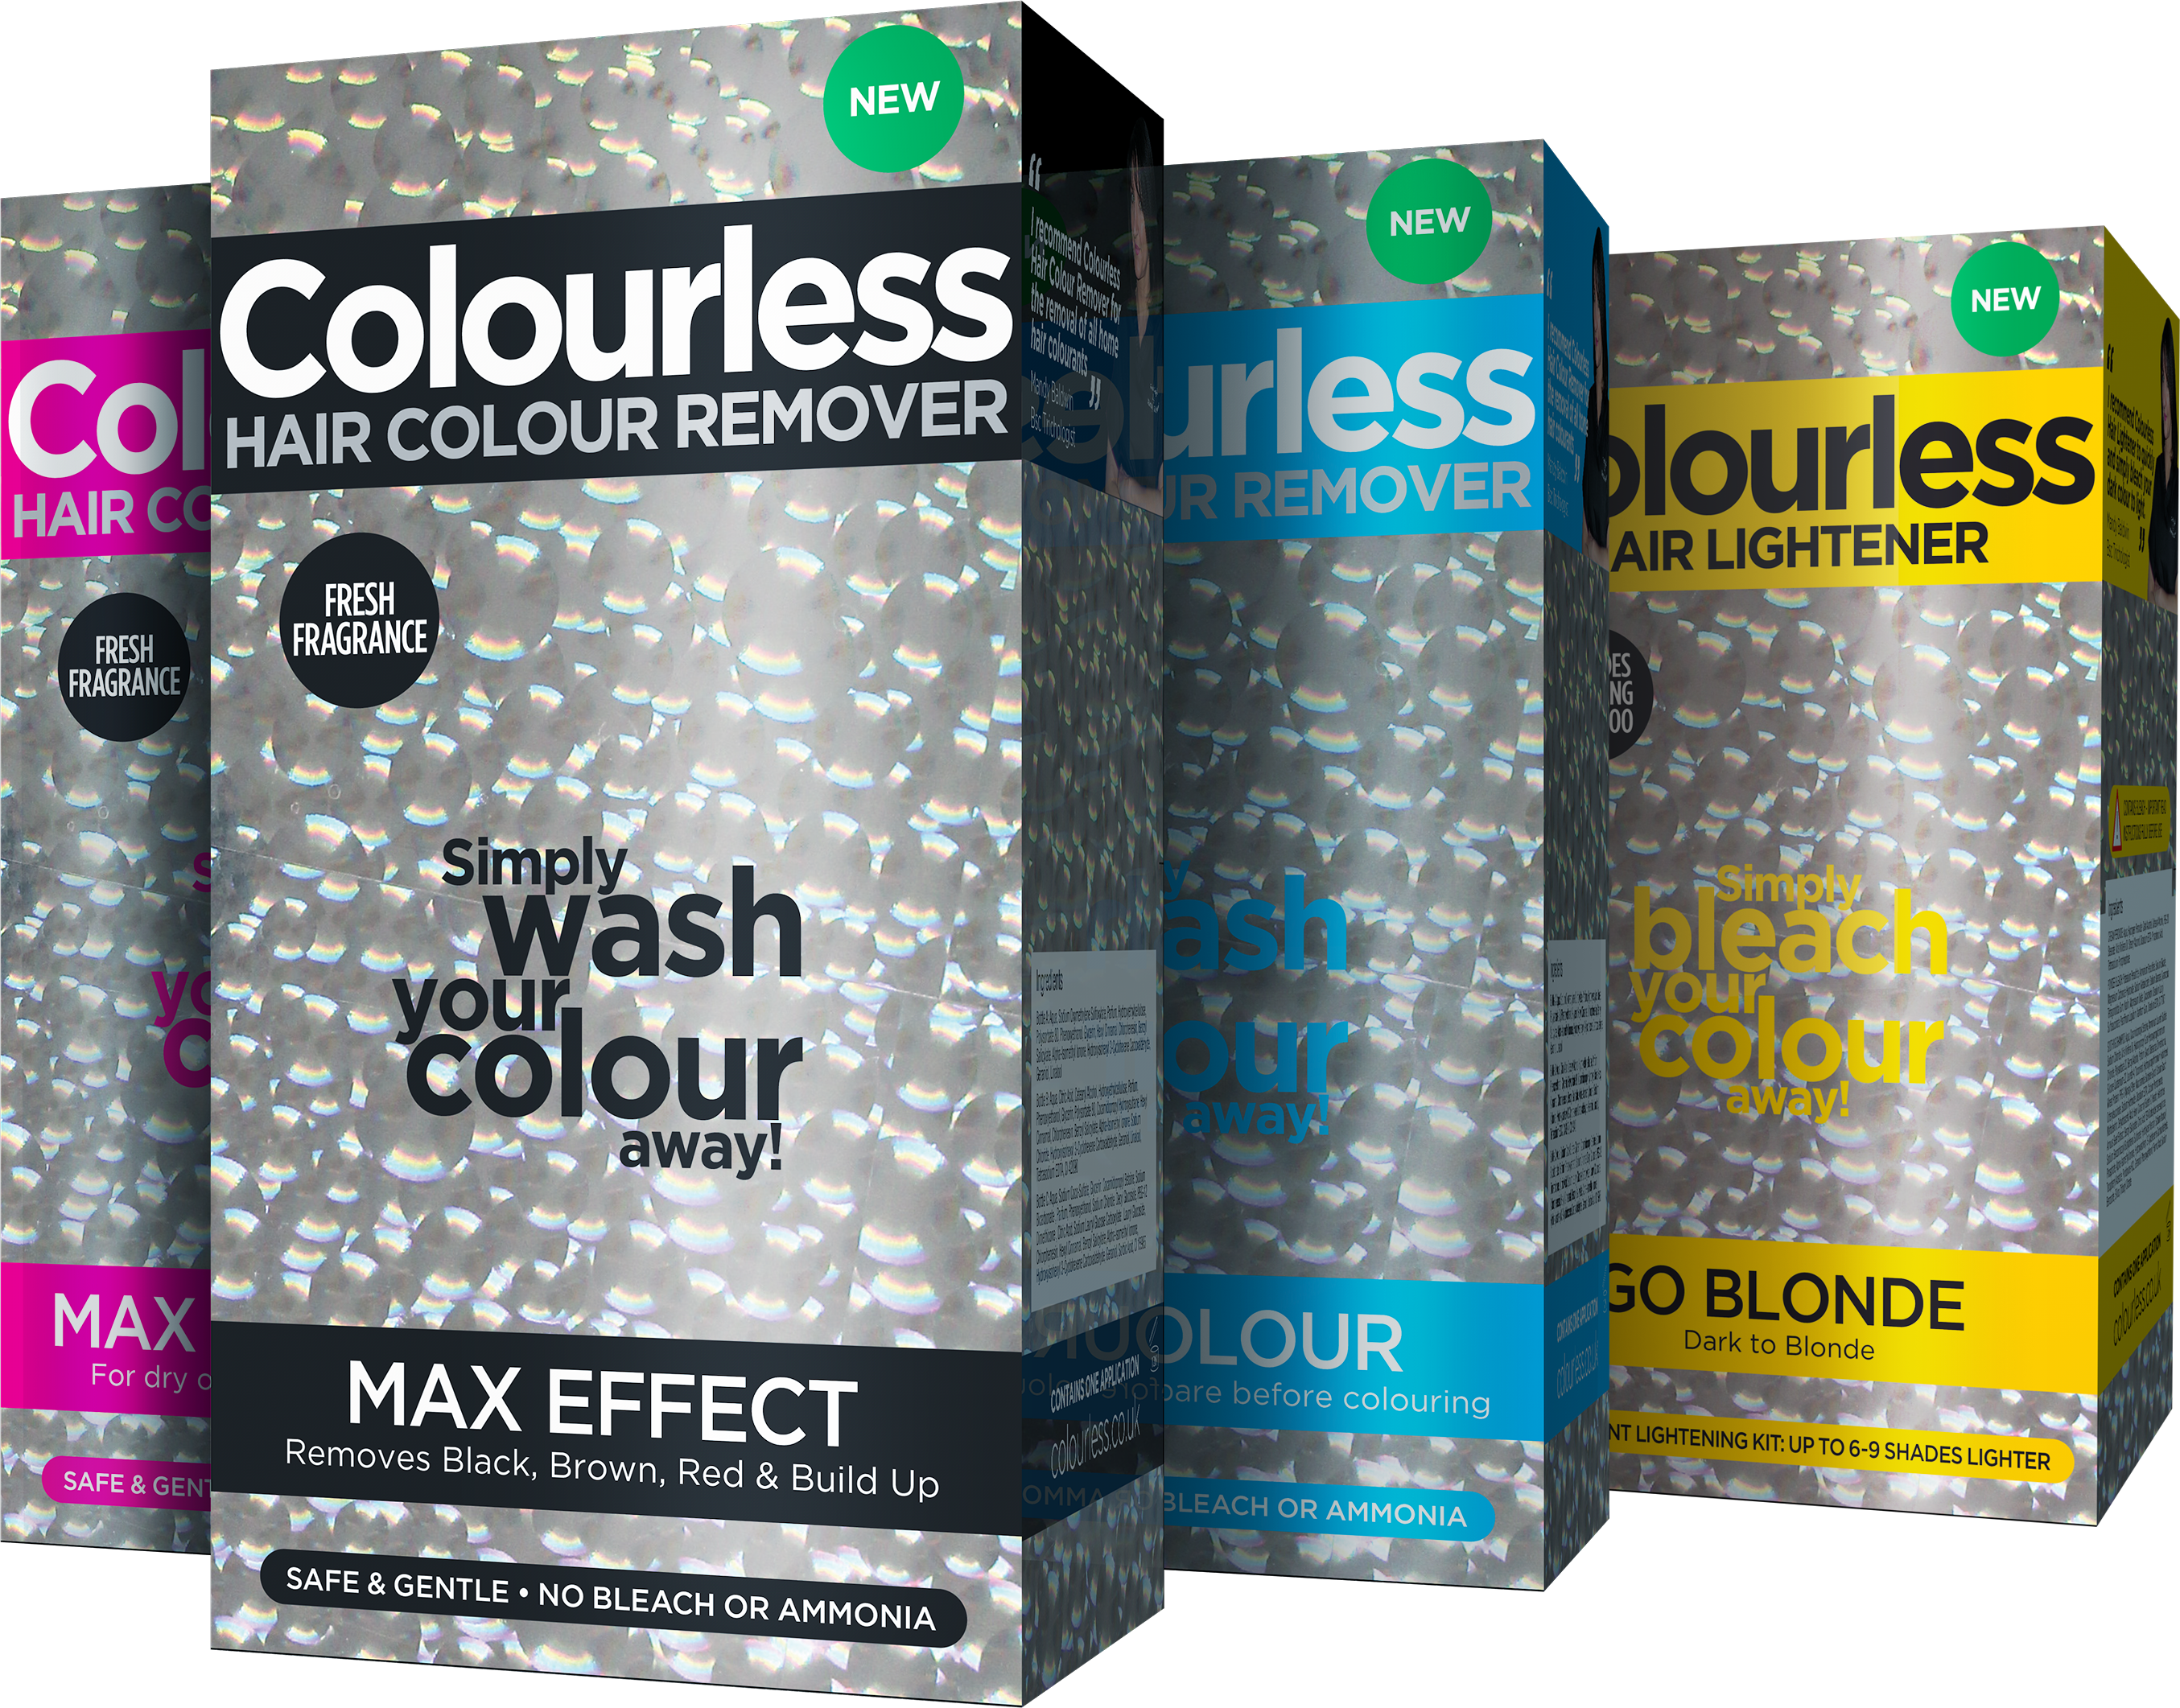 Colourless hair colour remover simply wash your colour away colourless hair colour remover solutioingenieria Gallery